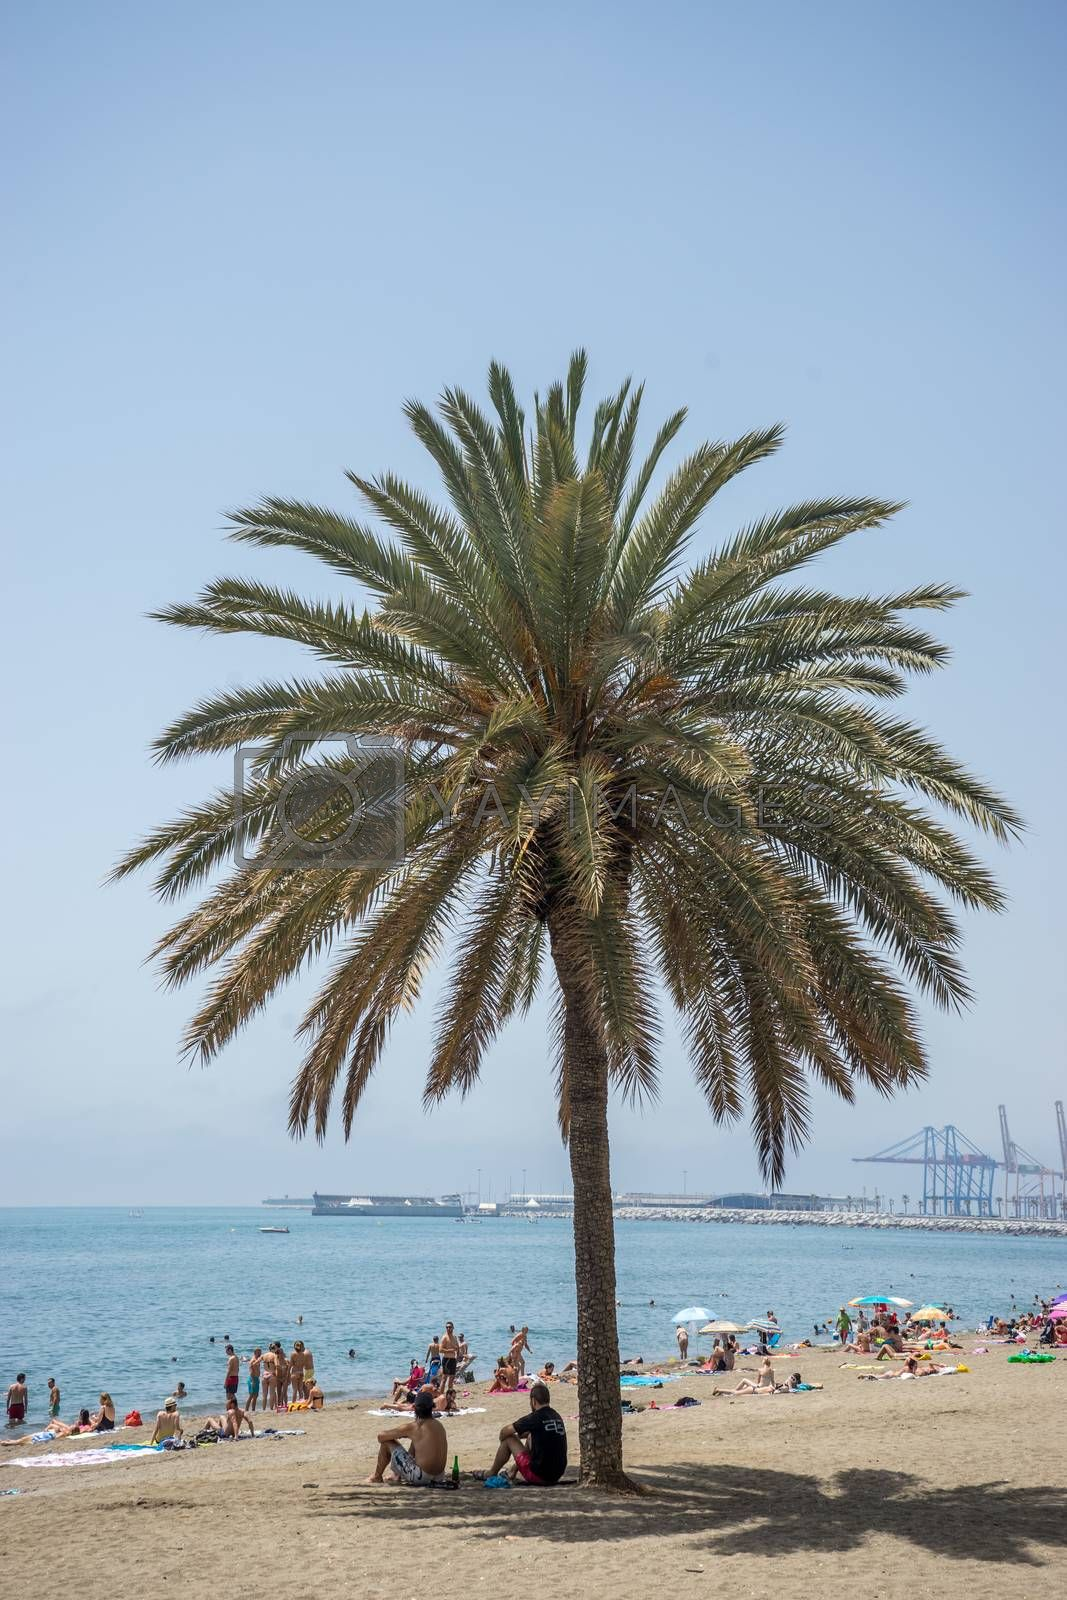 tall palm tree along the Malaguera beach with ocean in the background in Malaga, Spain, Europe with clear blue sky